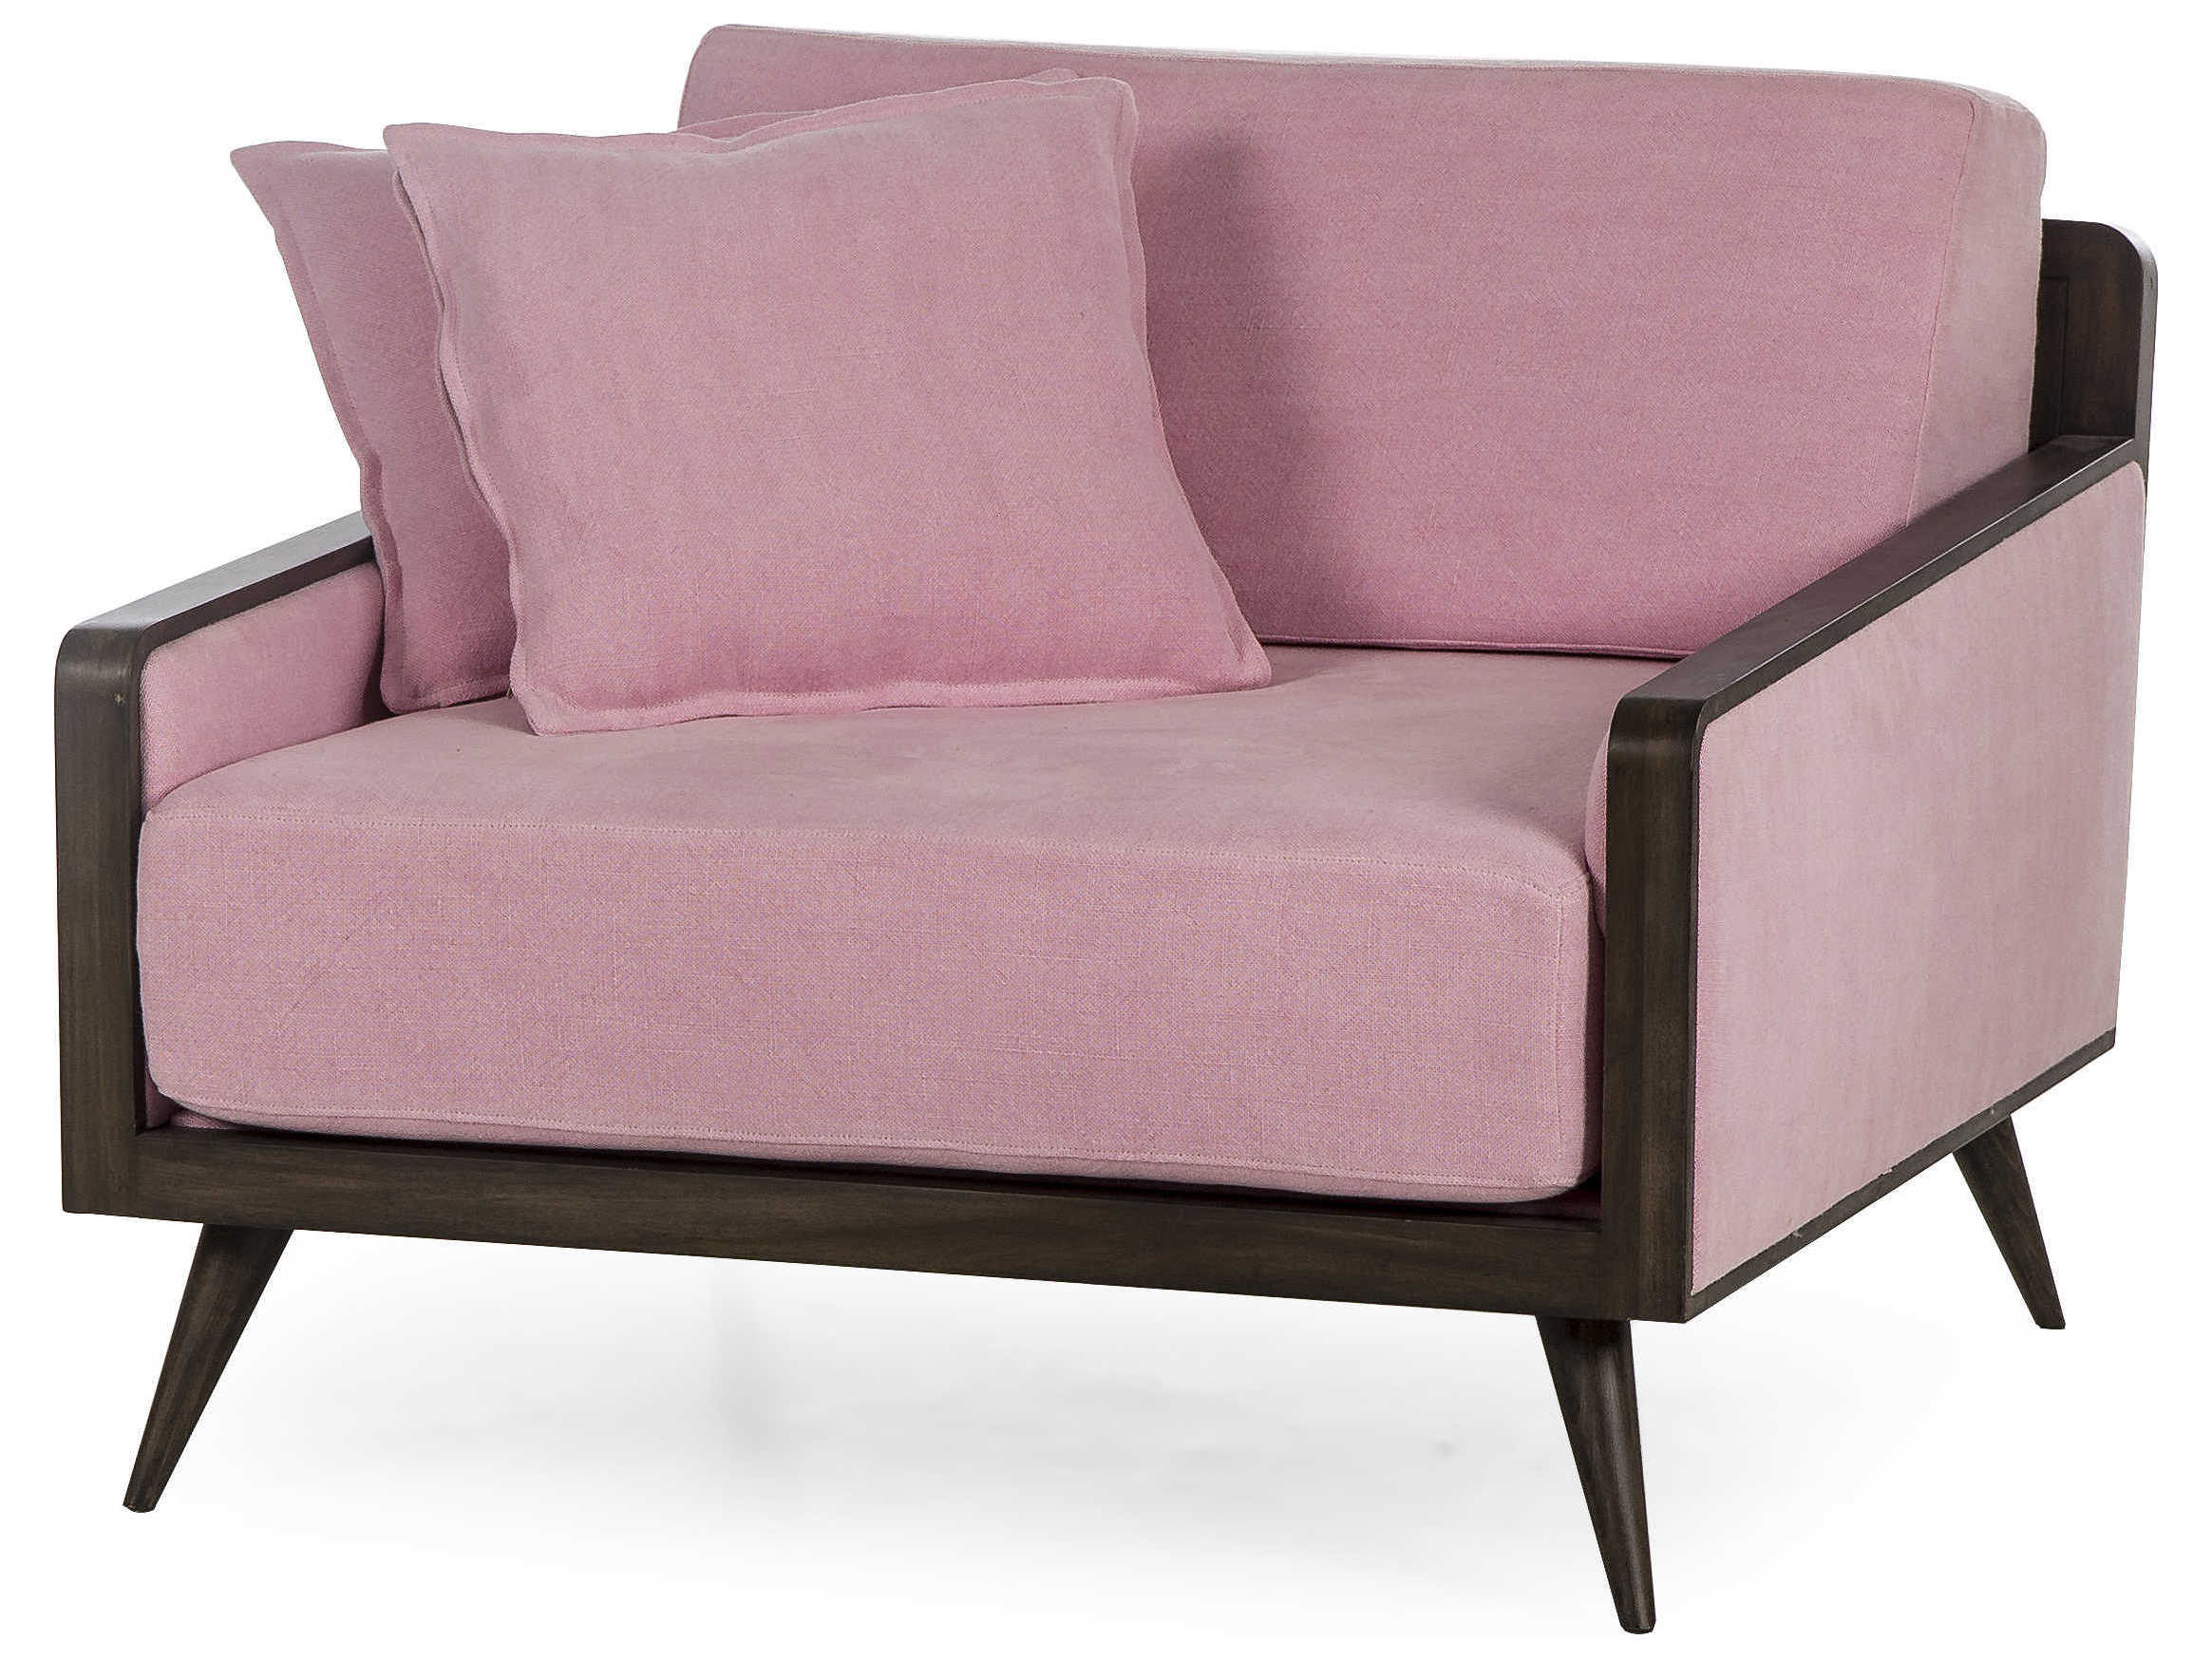 Super Sonder Distribution Serene Nina Pale Pink Accent Chair Andrewgaddart Wooden Chair Designs For Living Room Andrewgaddartcom